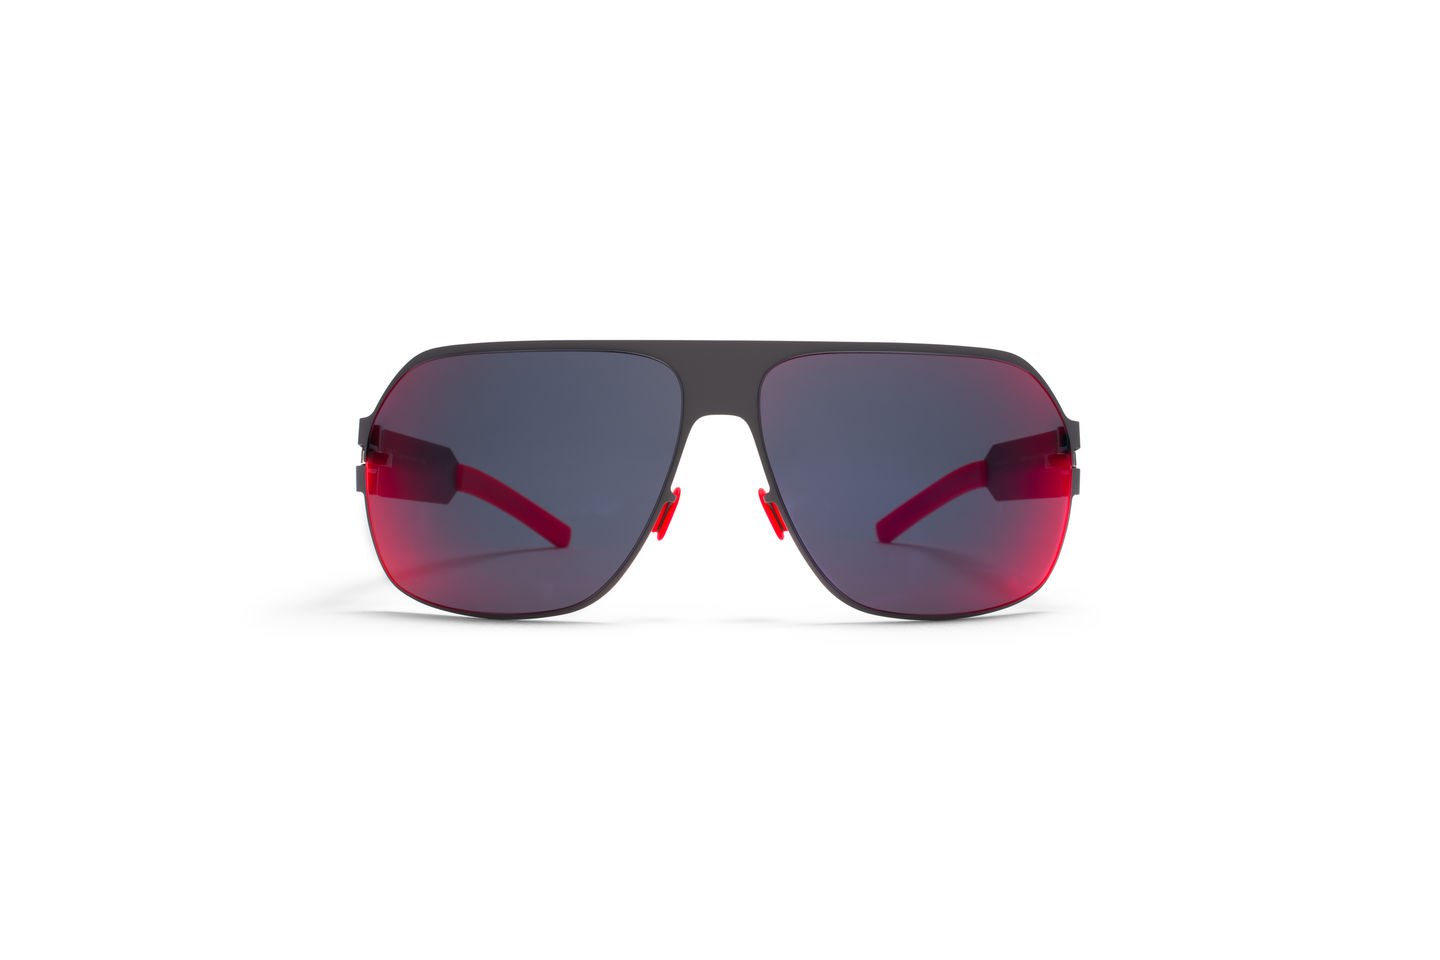 MYKITA & Bernhard Willhelm sunglasses XAVER in MYKITA JOURNAL's  Tropical Edit